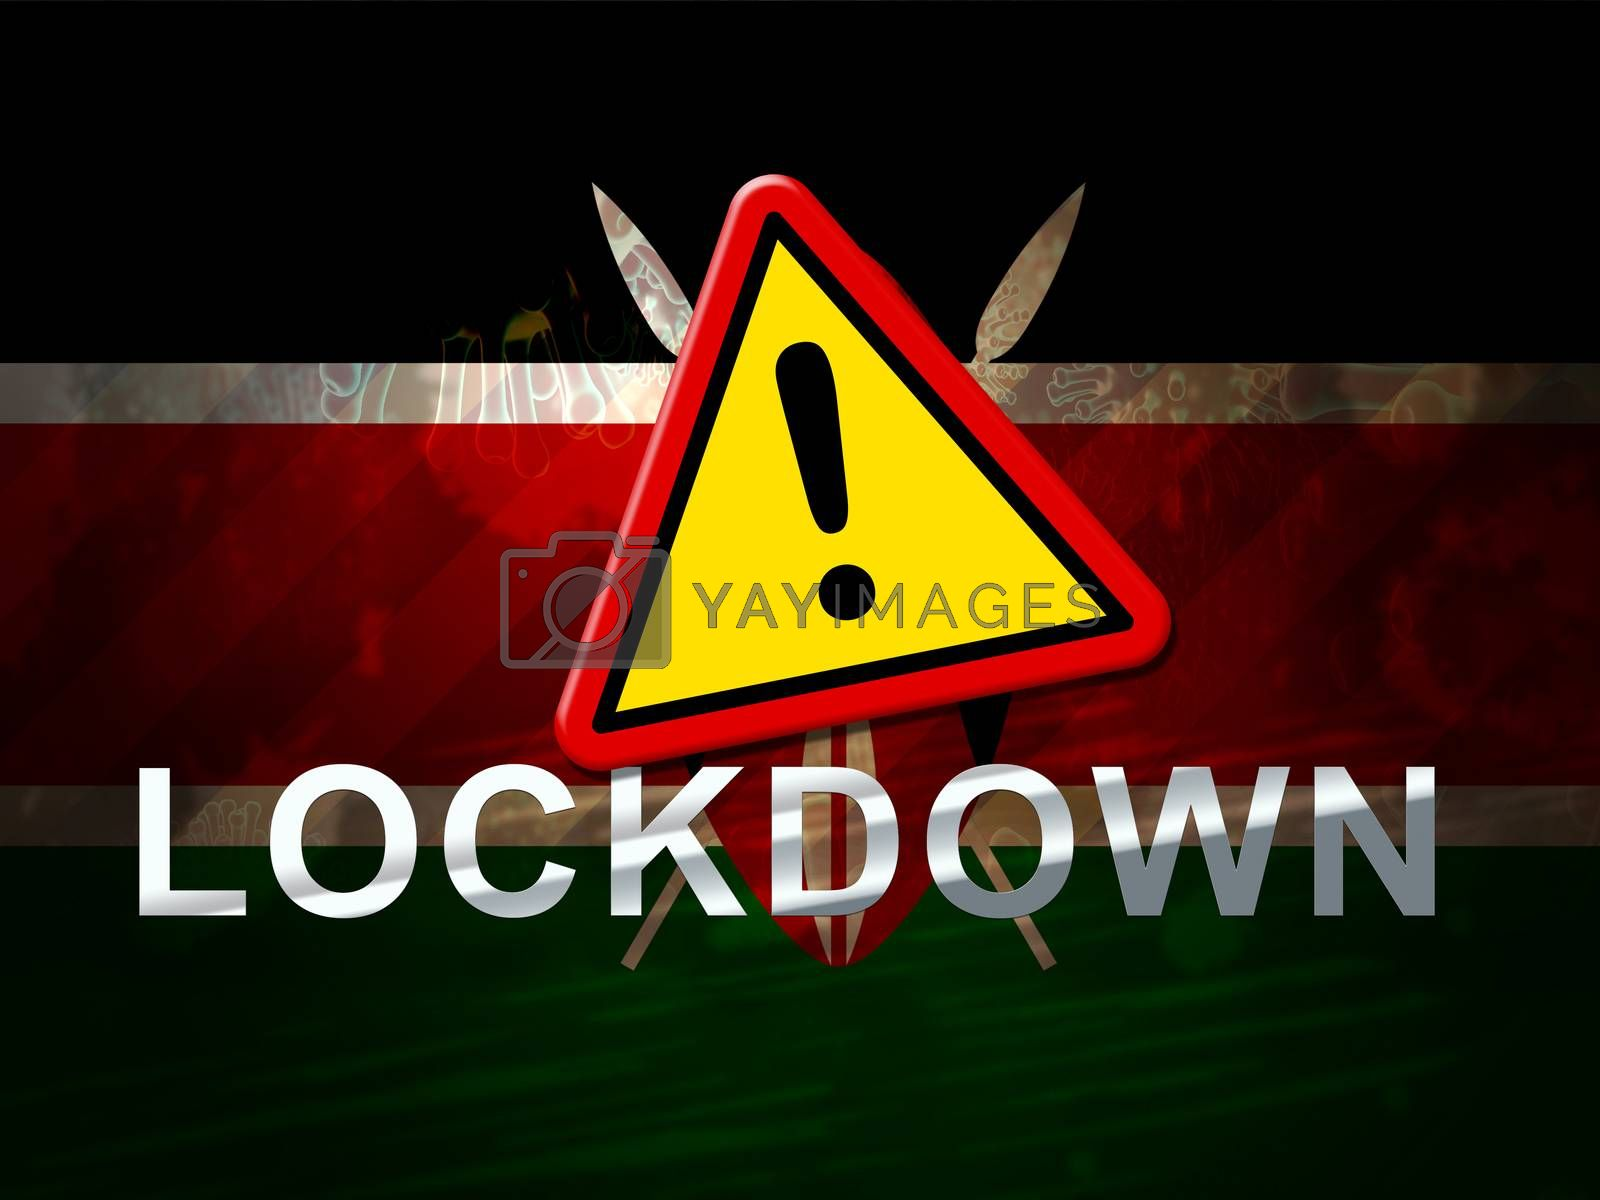 Kenya lockdown against coronavirus covid-19. Kenyan stay home order to enforce self isolation and stop infection - 3d Illustration